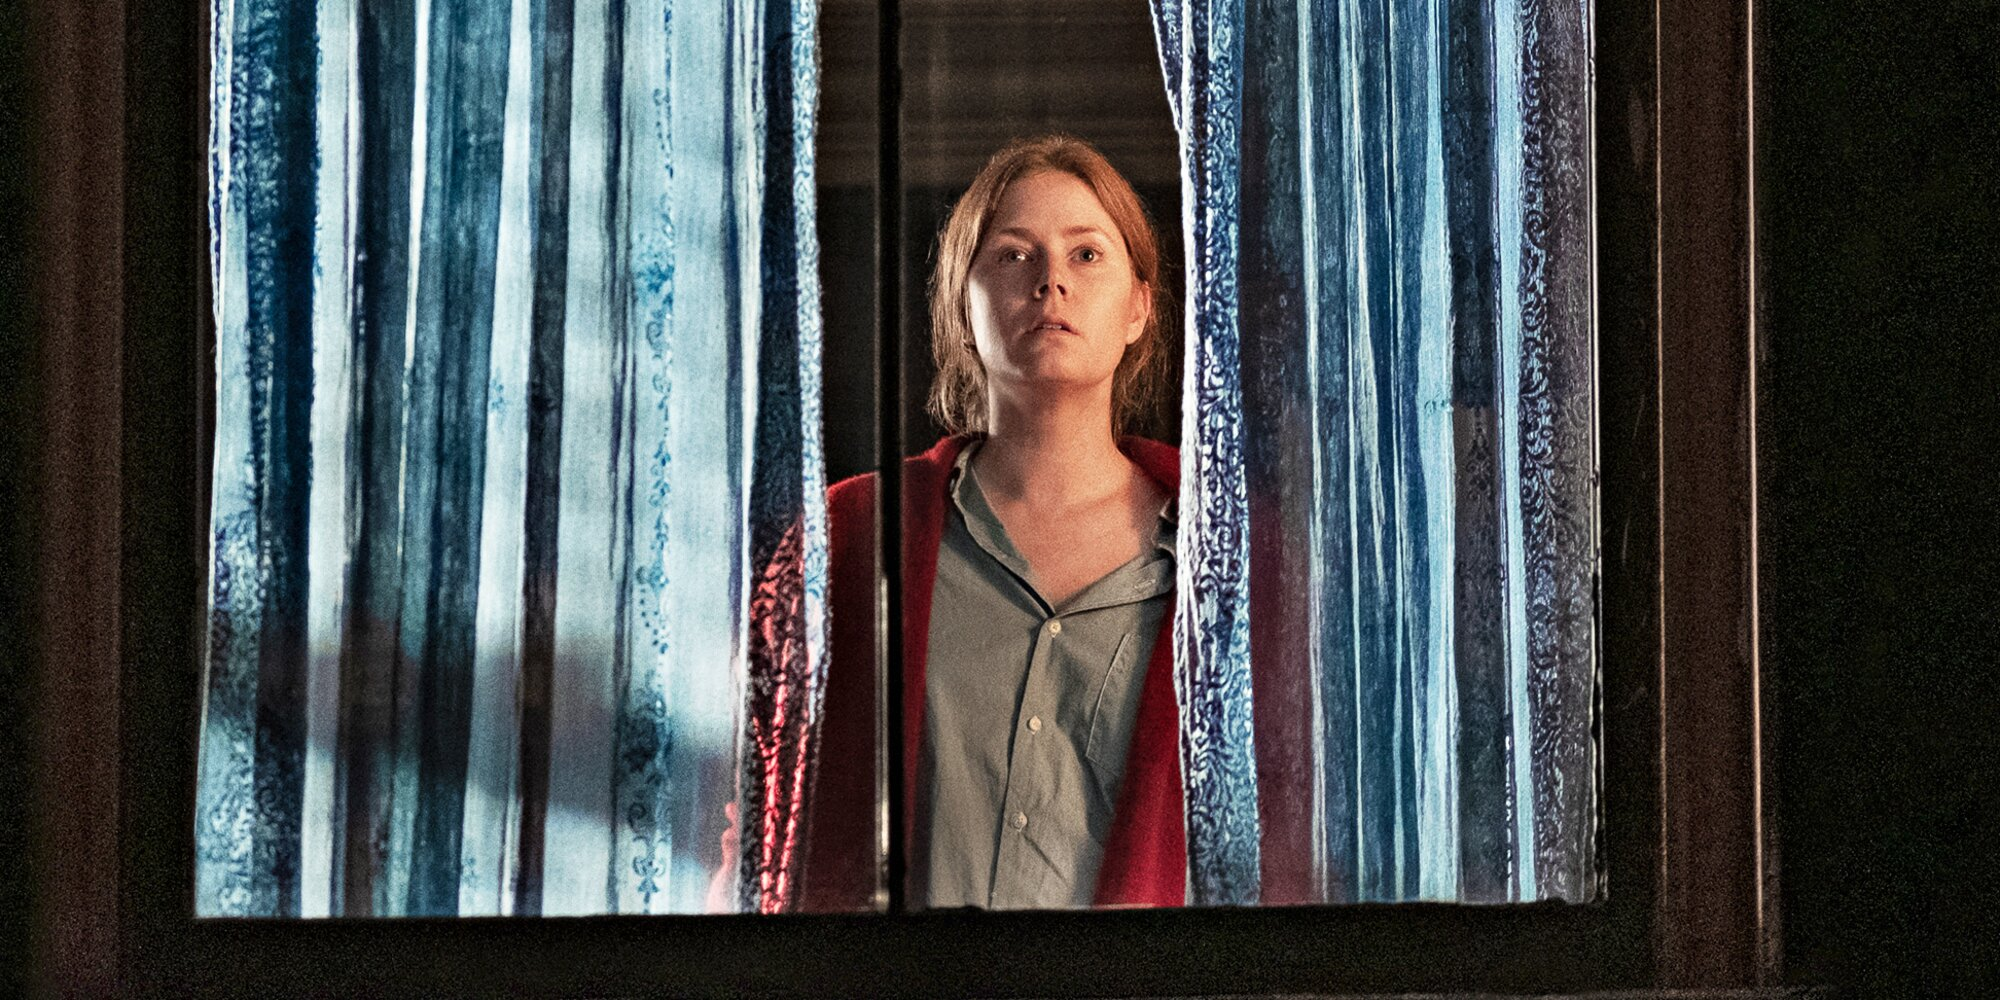 'The Woman in the Window's long and fittingly bizarre journey from best-seller to Netflix thriller